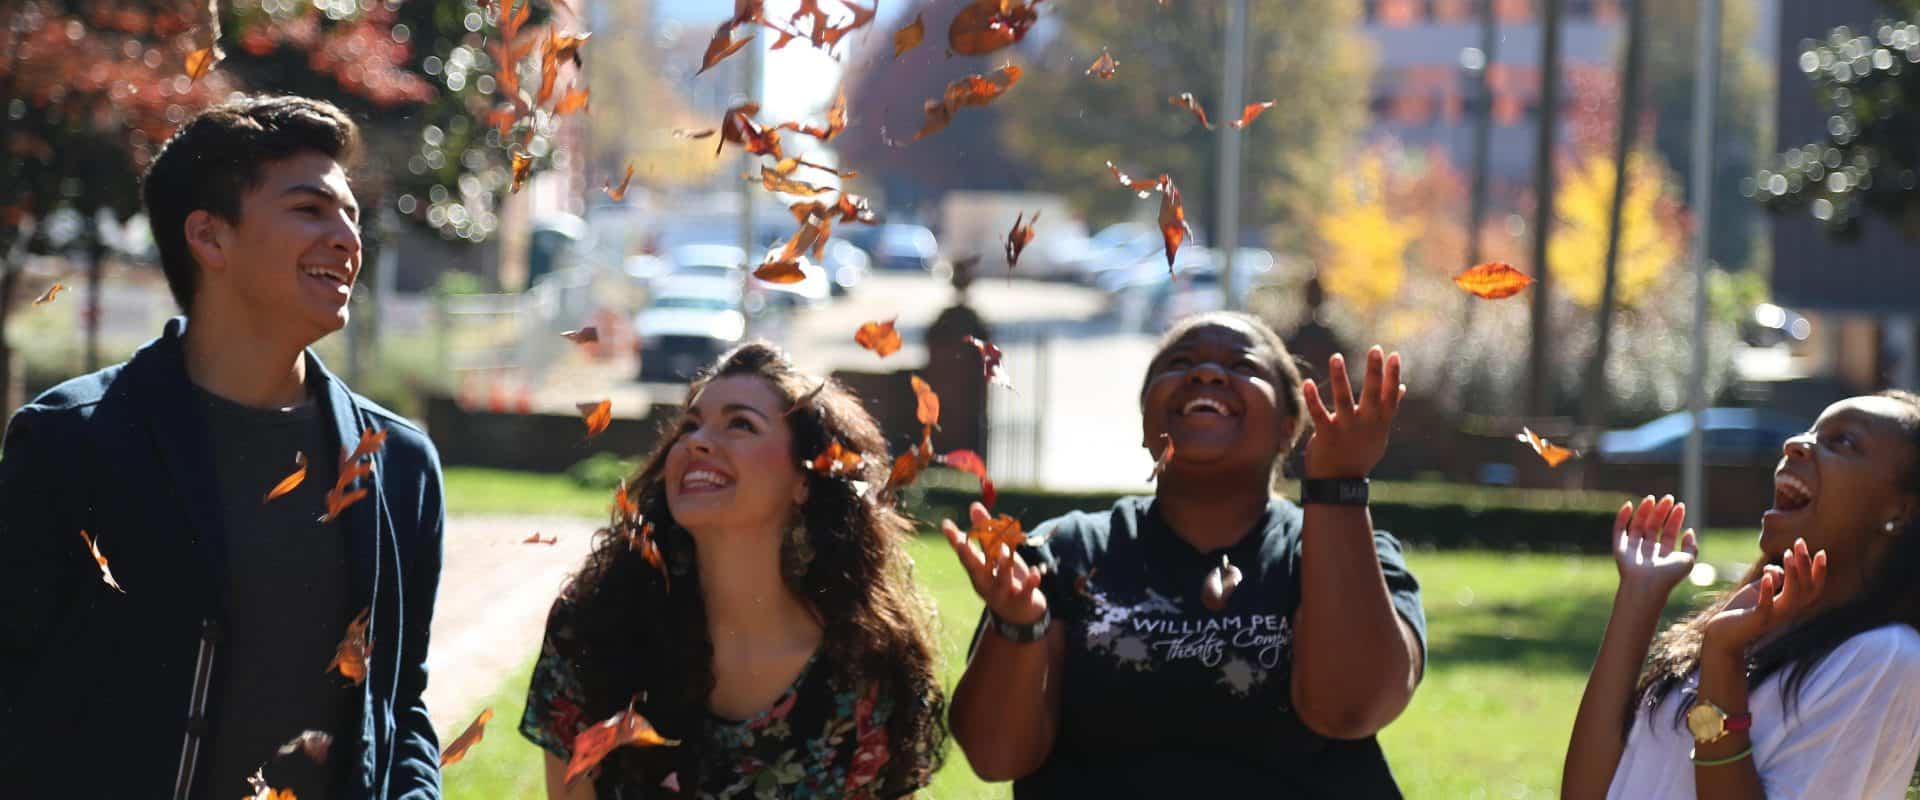 WPU students enjoying the Fall weather.